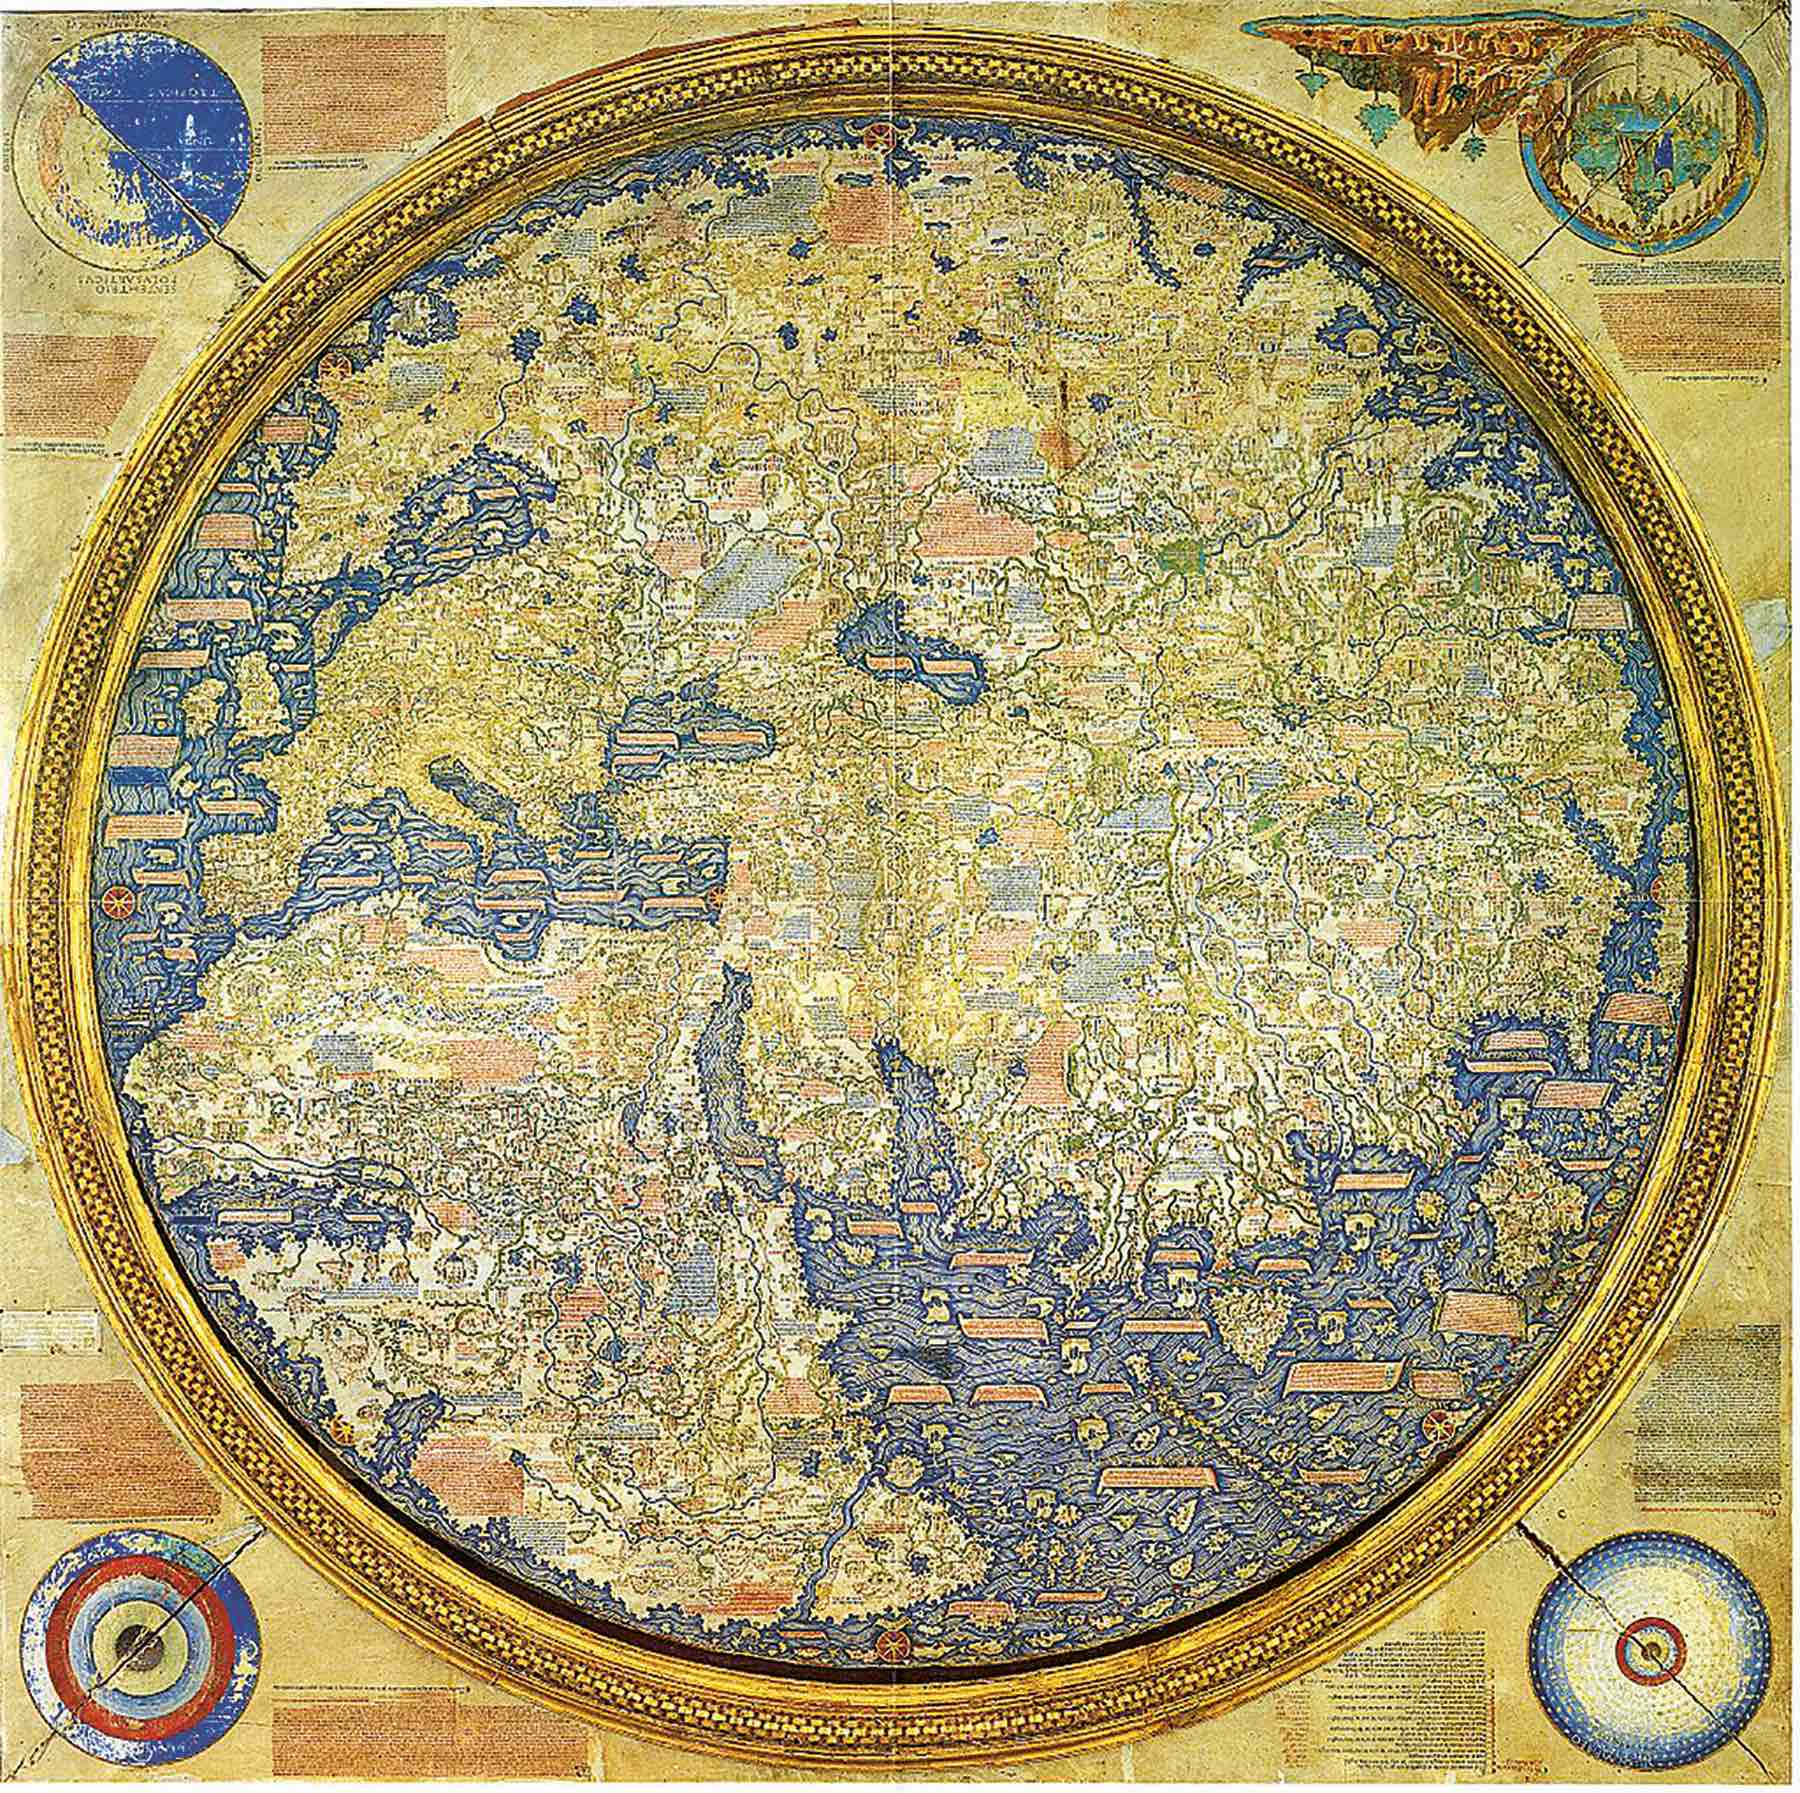 Fra Mauro World Map, c. 1450, facsimile by William Frazer, London and Venice, 1804. British Library, London.